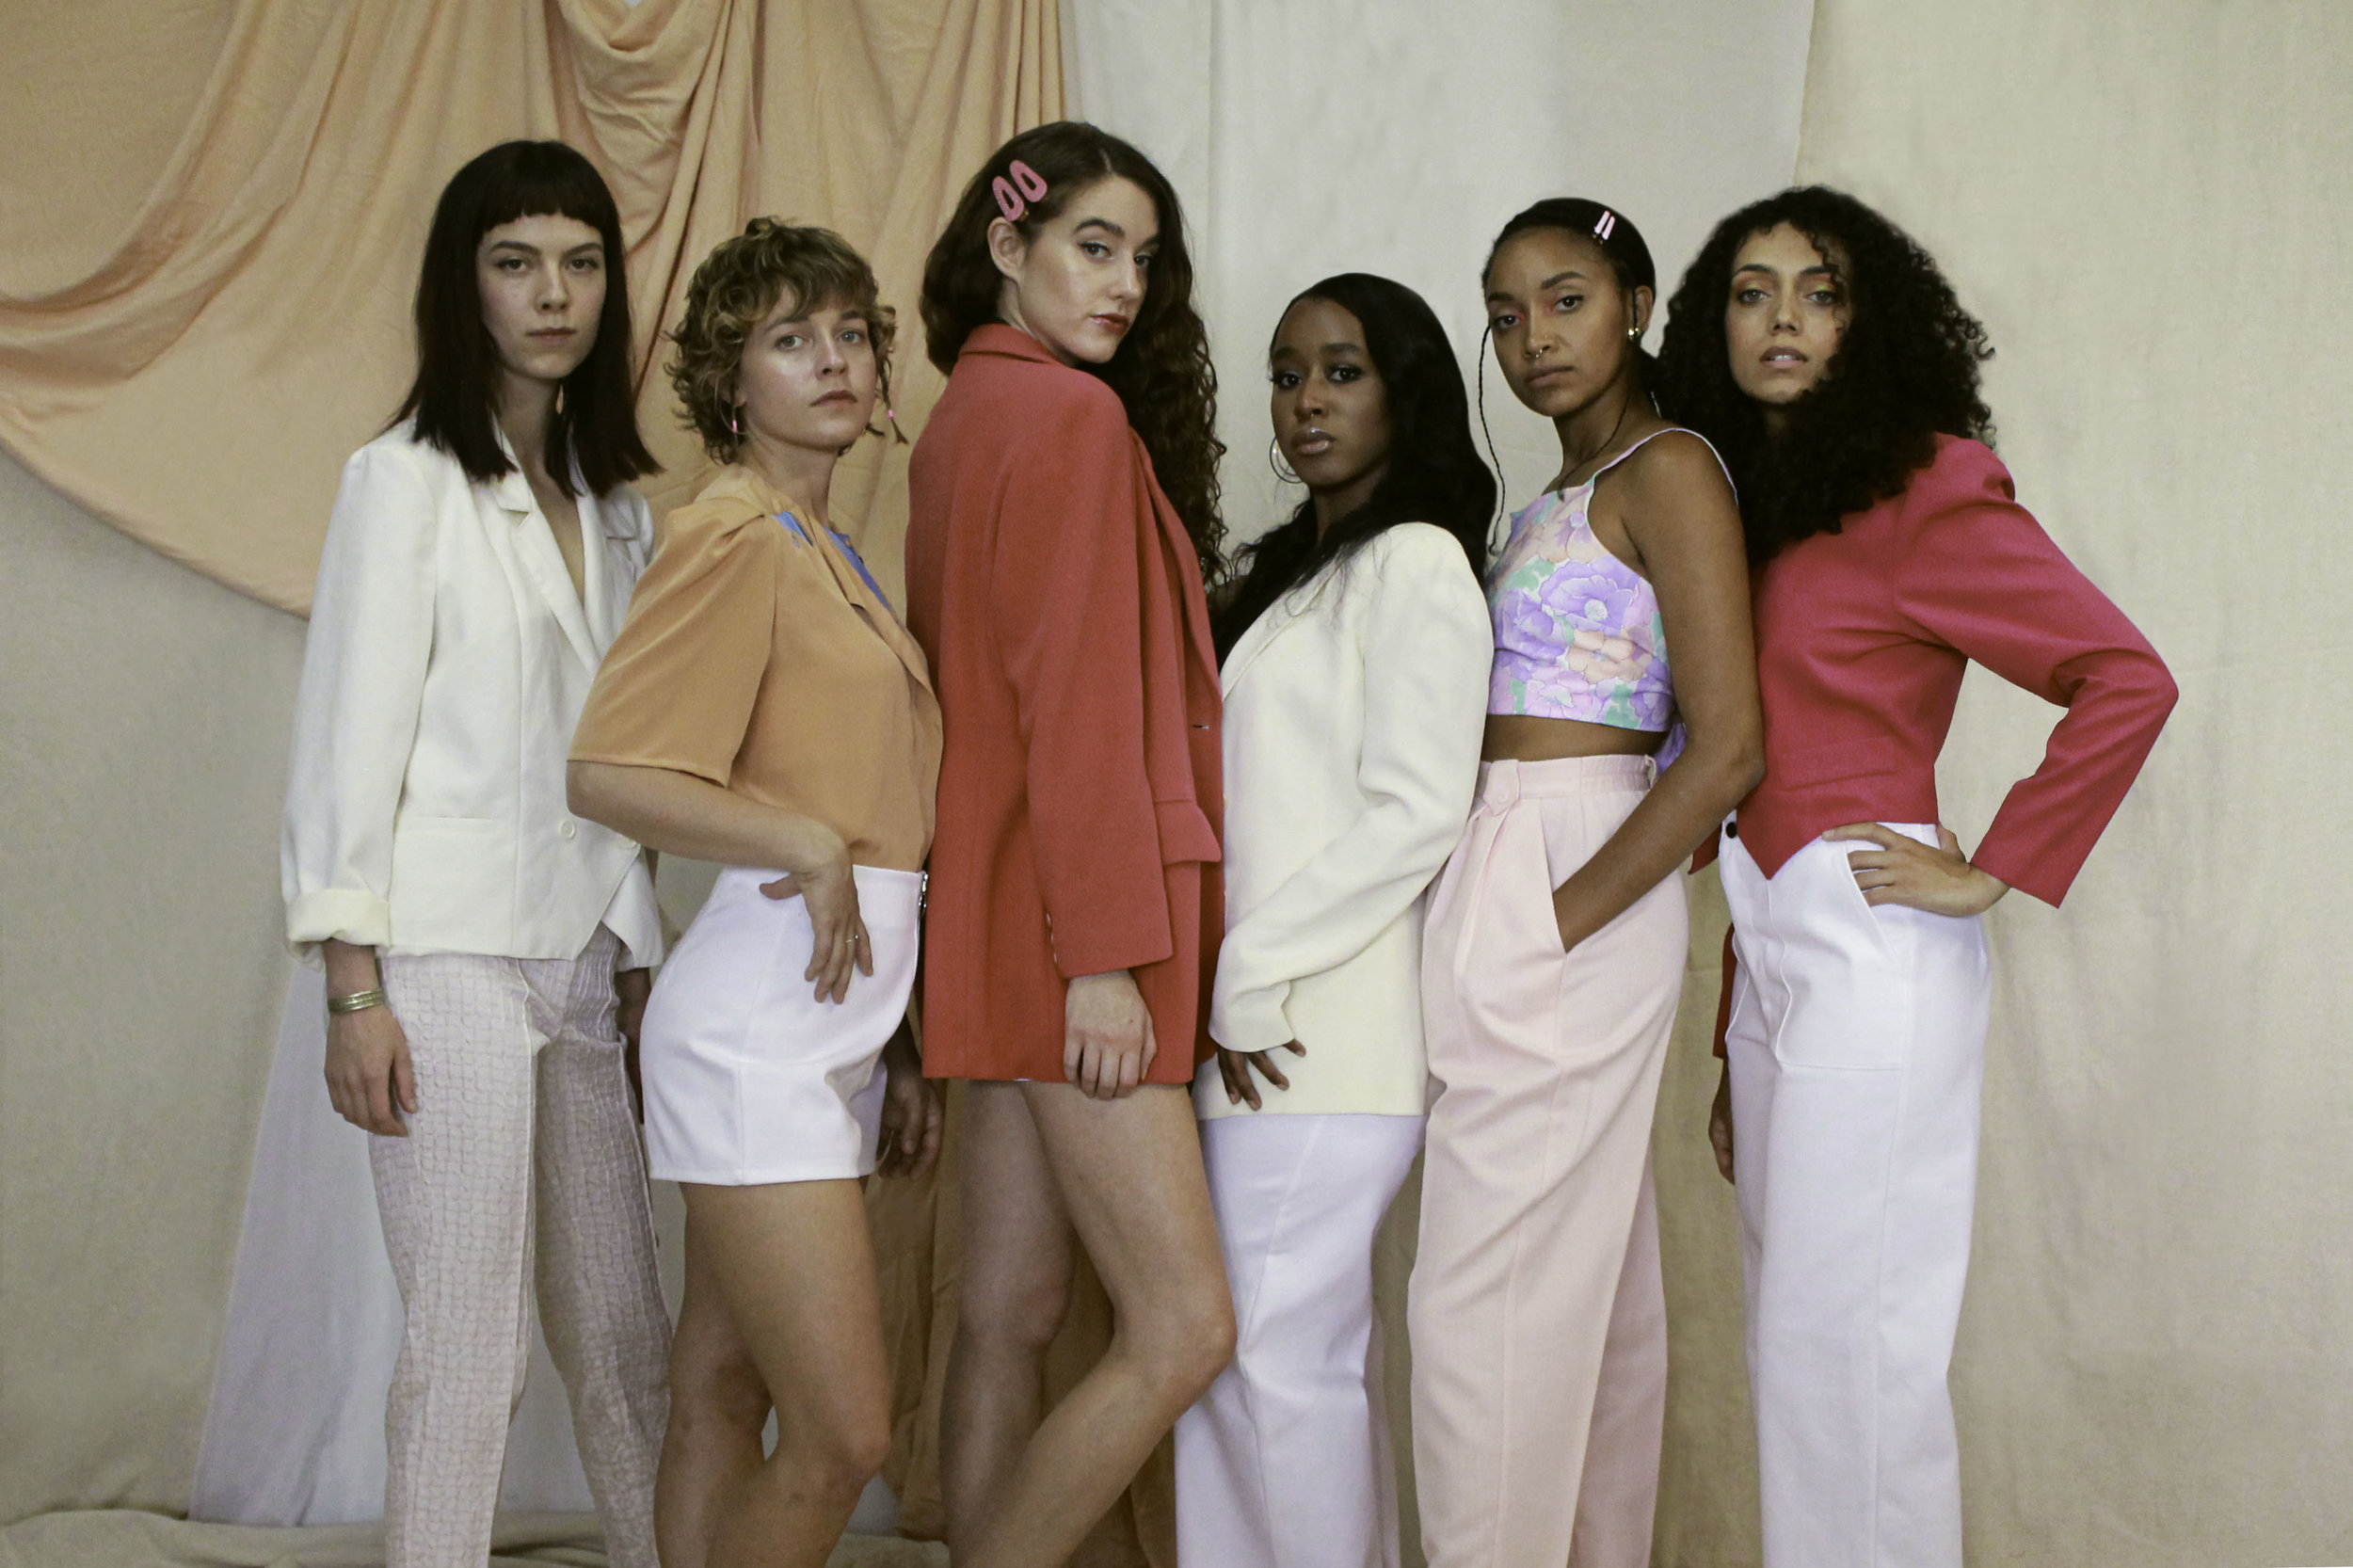 Citizen Vintage x Hot Tramp Festival by Malaika Astorga. Featuring Cyber, The Leanover, Hanorah, Janette King & Maryze